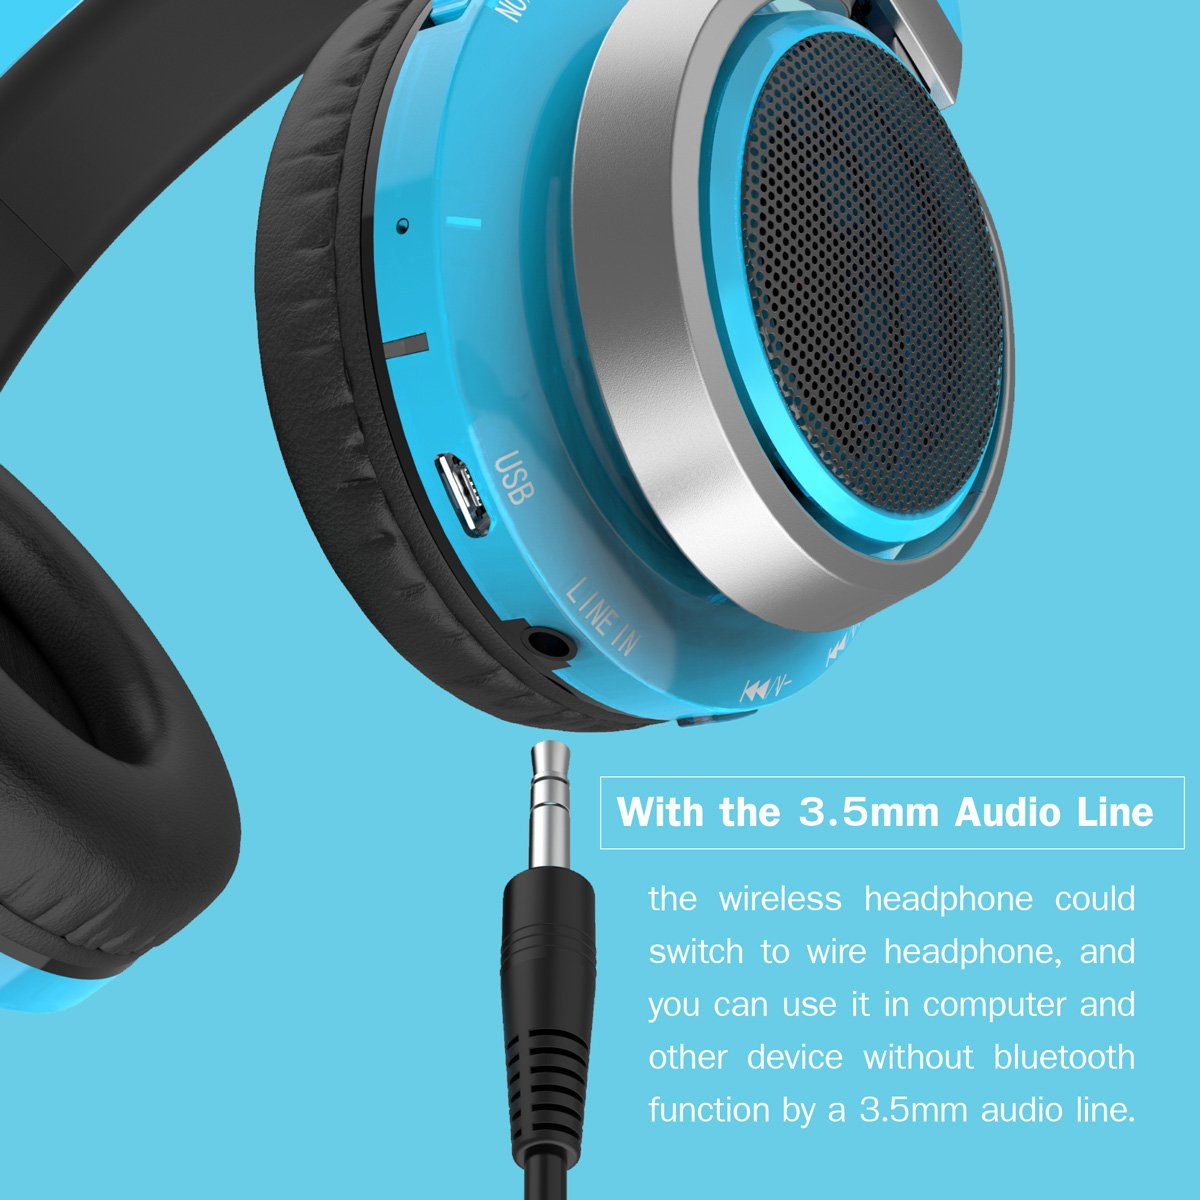 Excelvan Wireless Bluetooth Over Ear Headphones with Flashing Light for Kids Children Support FM Radio TF Card for iPhone 8 7 7plus ipad Tablet Samsung Android Phones (Blue)